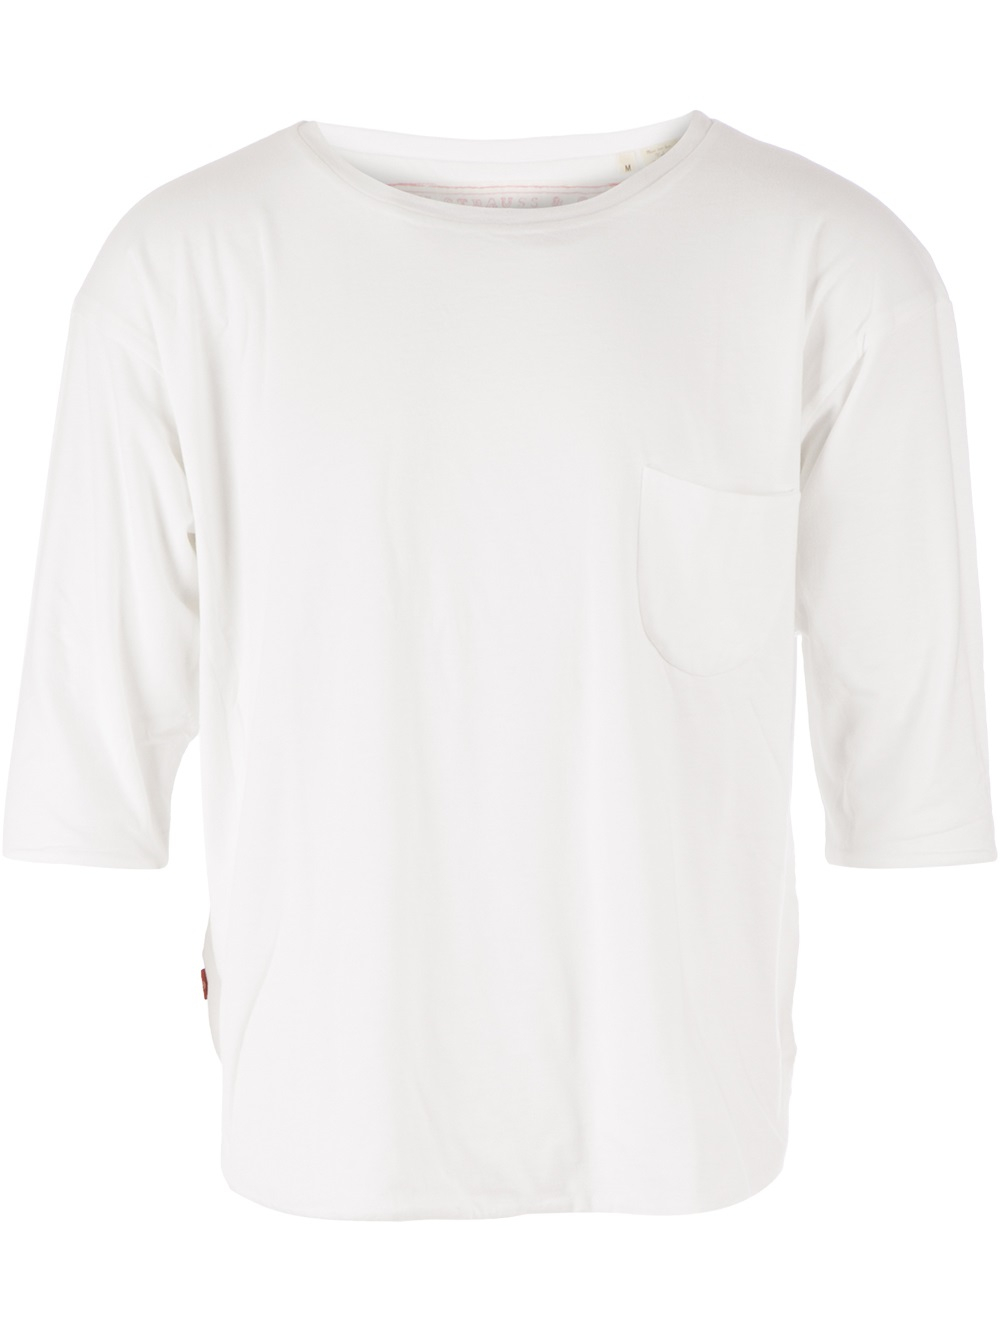 Lyst Levis Red Boat Neck Tshirt In White For Men